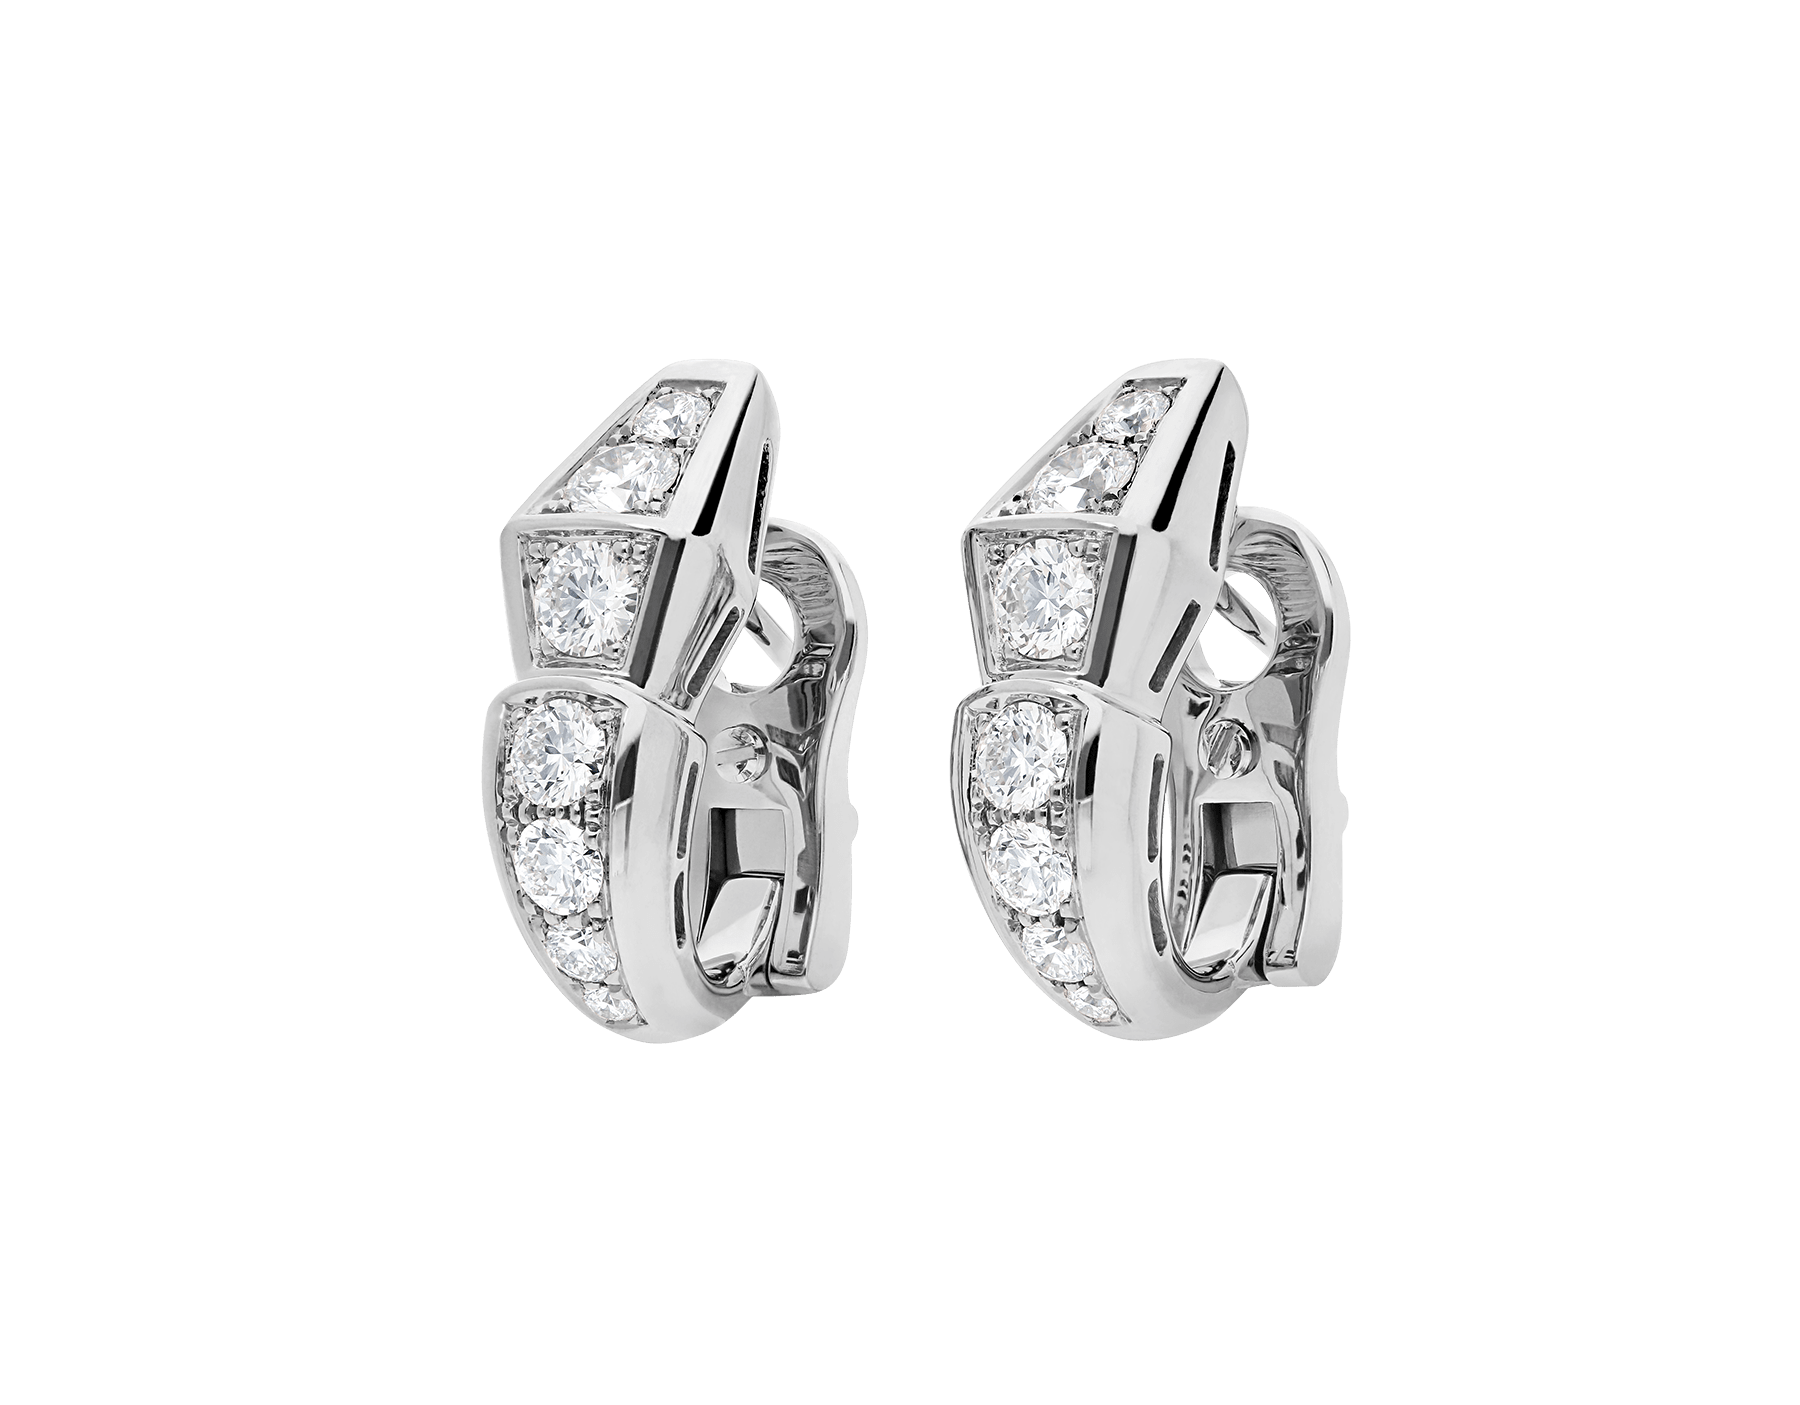 Serpenti Viper slim earrings in 18 kt white gold, set with full pavé diamonds. 351426 image 2